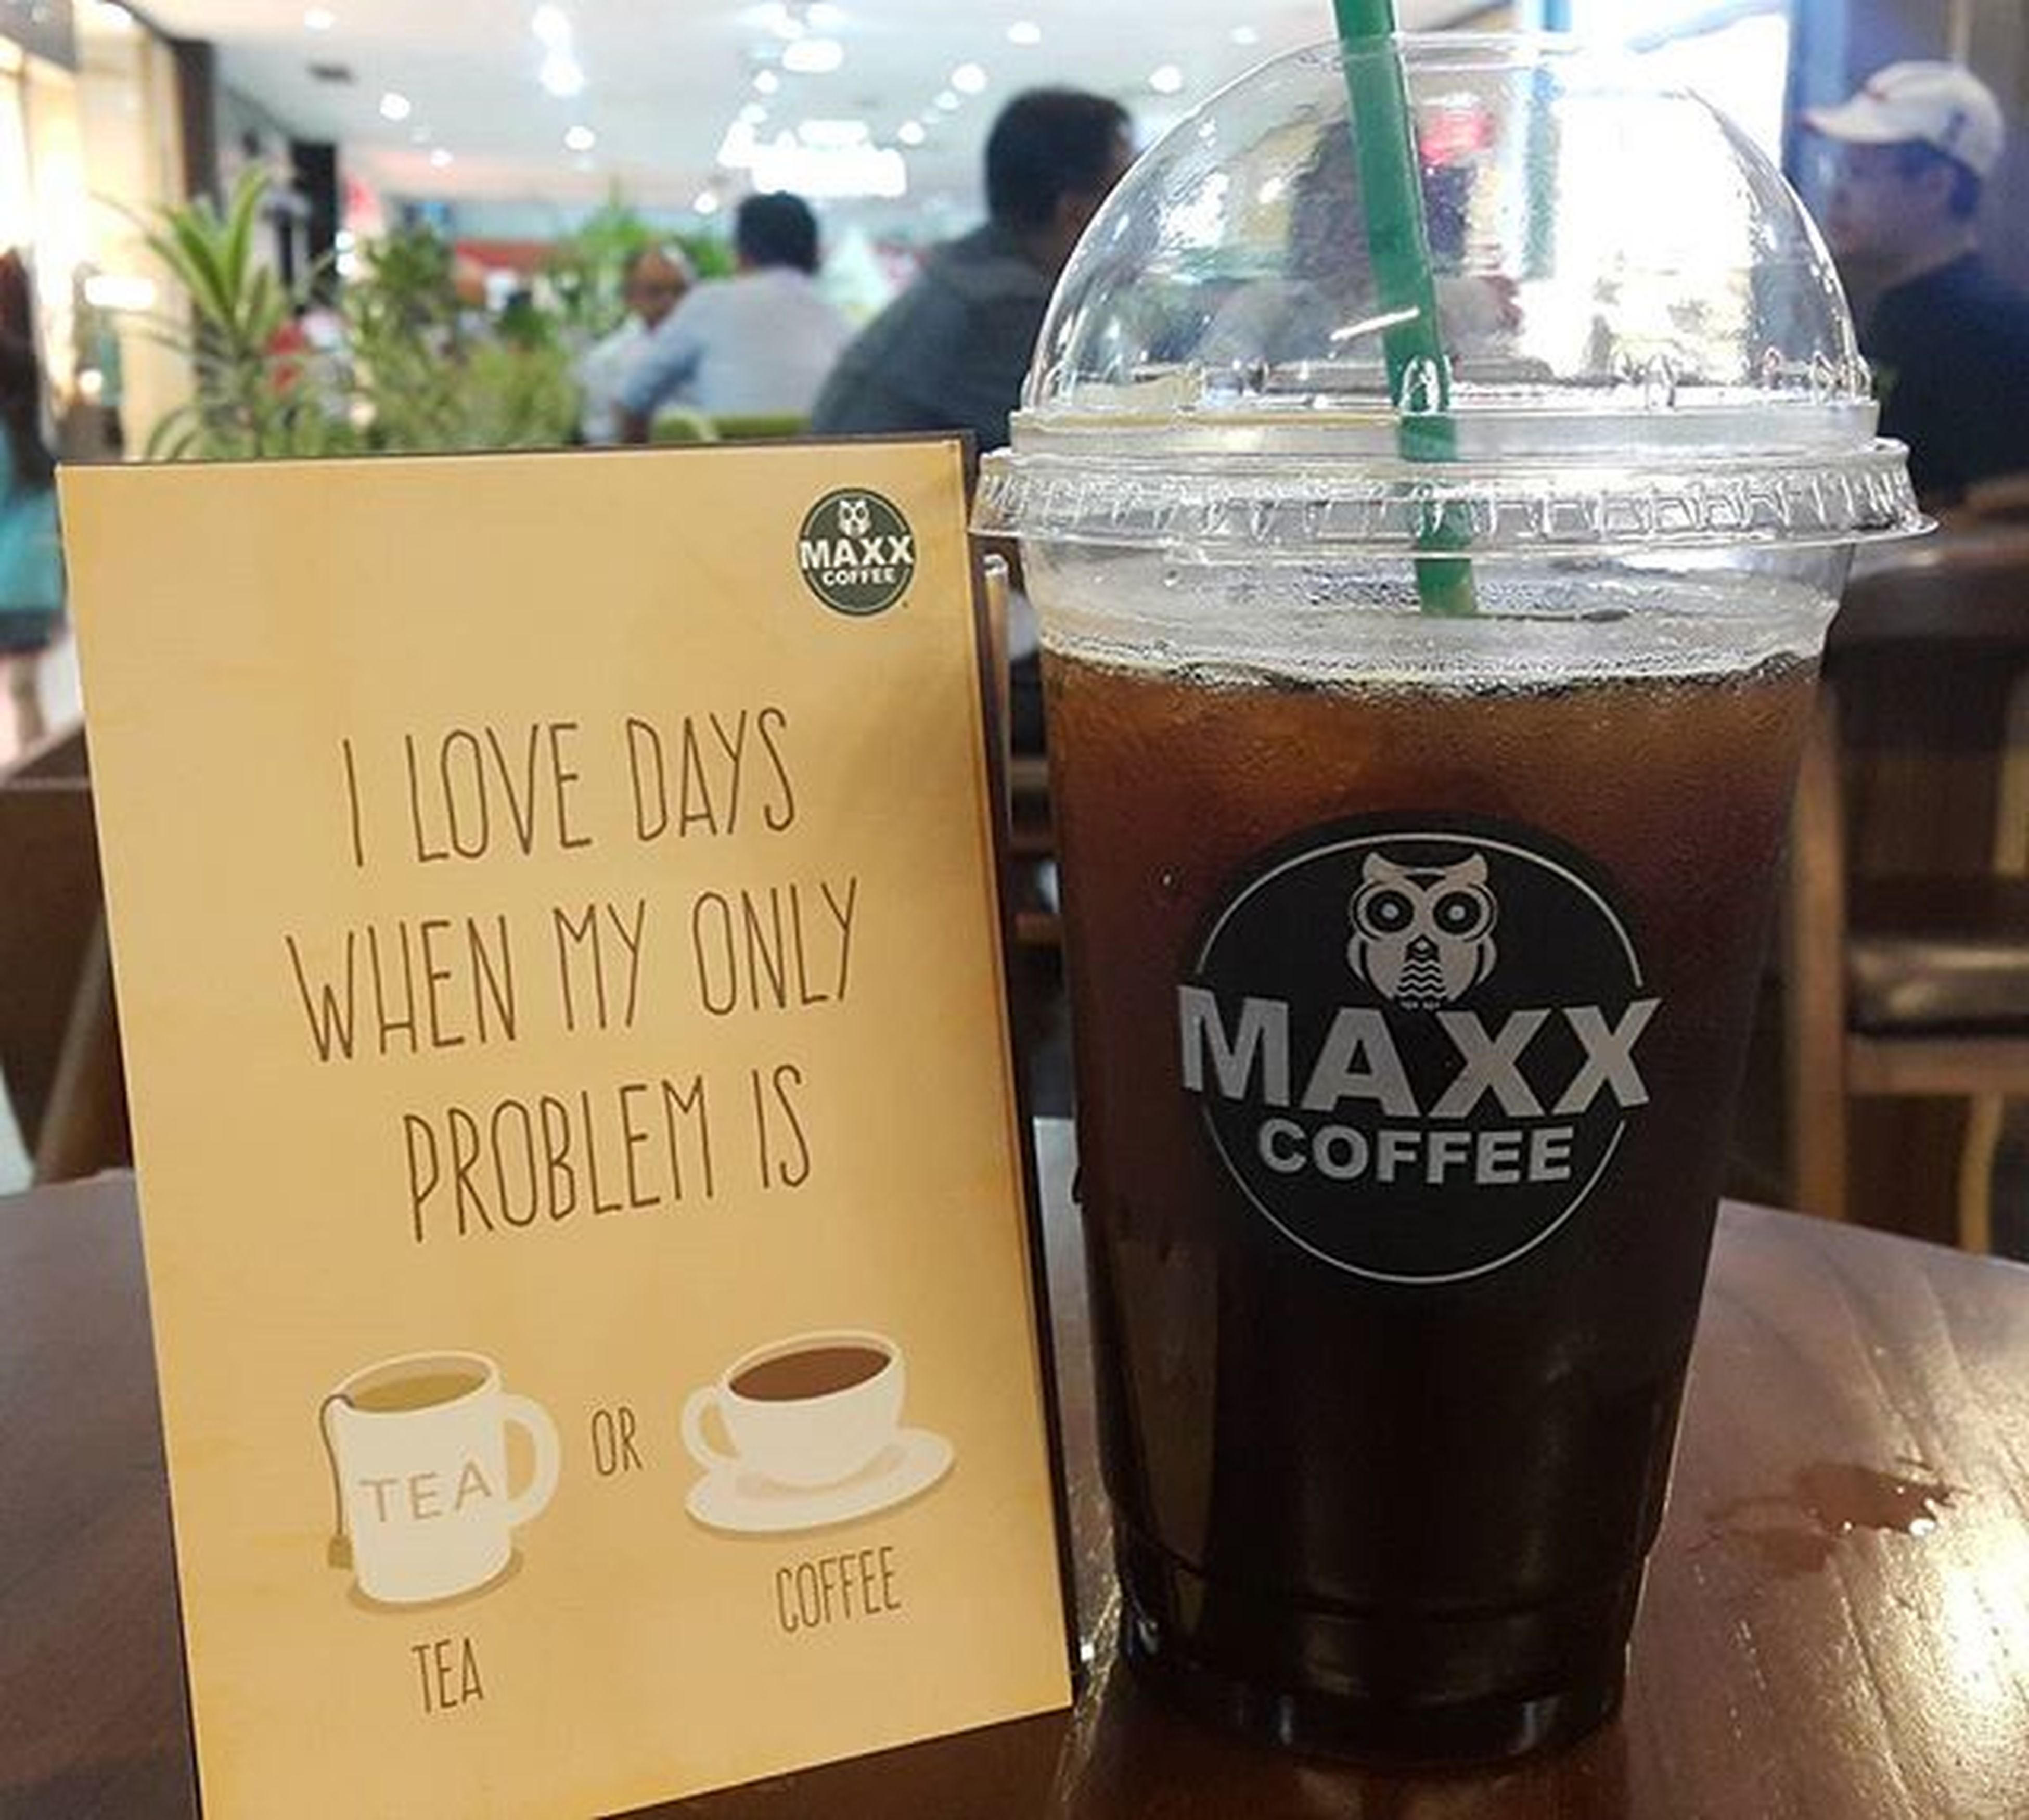 Benefits of drinking coffee: 1. Wakes you up 2. Hand warmer 3. It's so yummy 4. Great fot procastinating 5. People watching in coffee shop 6. You get to use your favorite mug . Ice Americano by @maxxcoffeeid . . Coffee Qraved Kitabjajan Qravedcommunity Qravedsurprise Coffeebreak Qraved Note4 IGforFunjustPost Ig_photooftheday Street Food WorldwideIndonesia_photography Ig_indonesia_ Pict_lovers Maxxcoffee Maxxexperience